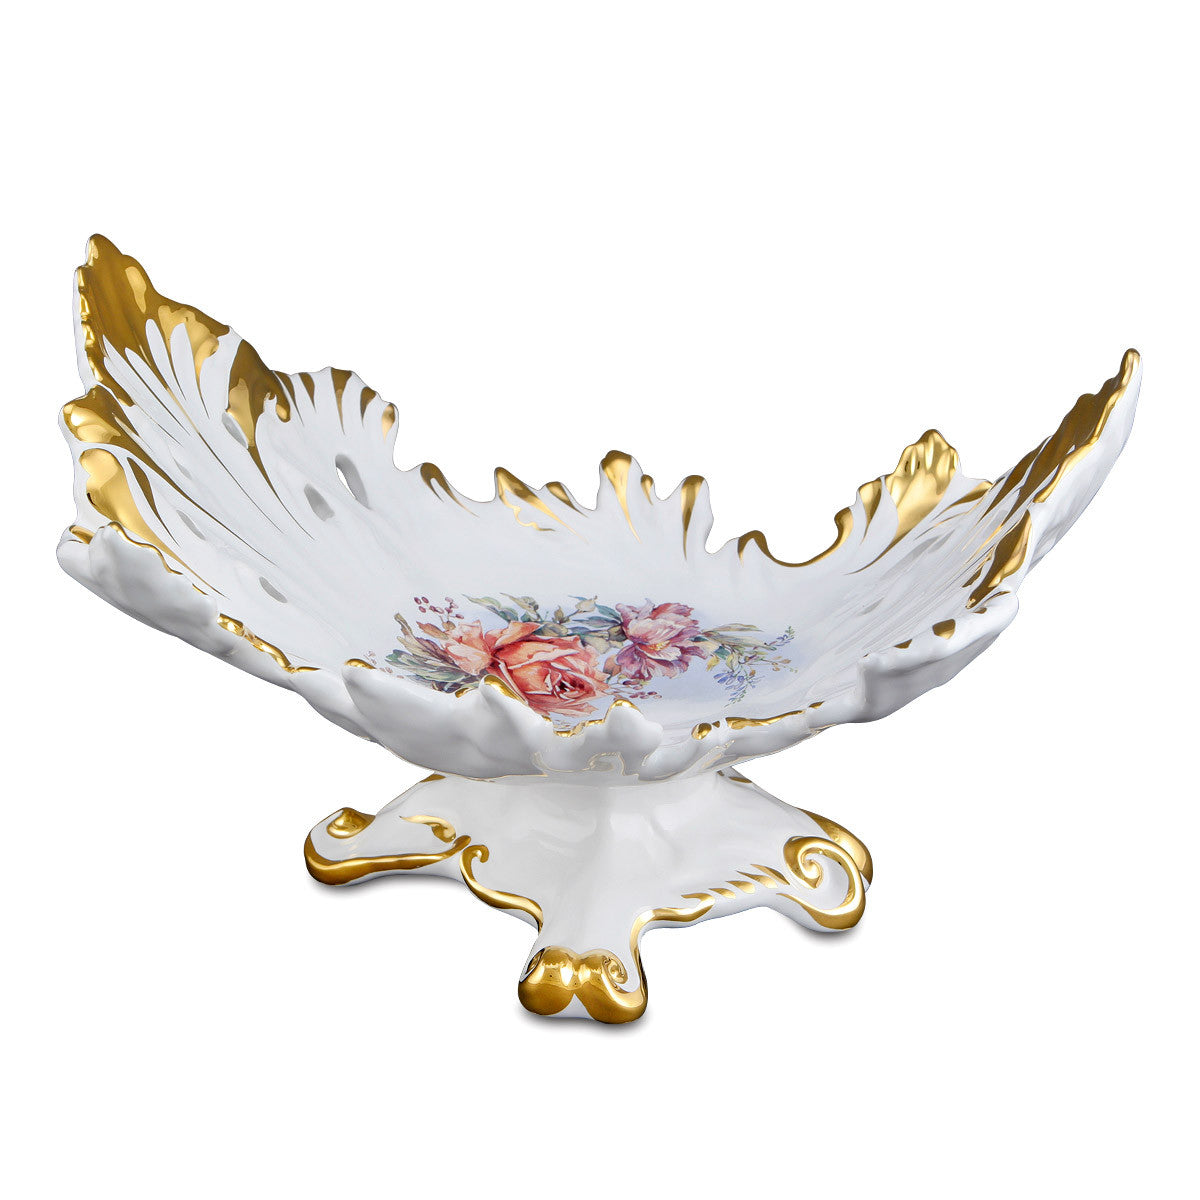 Ceramic baroque pedestal bowl with flower detail